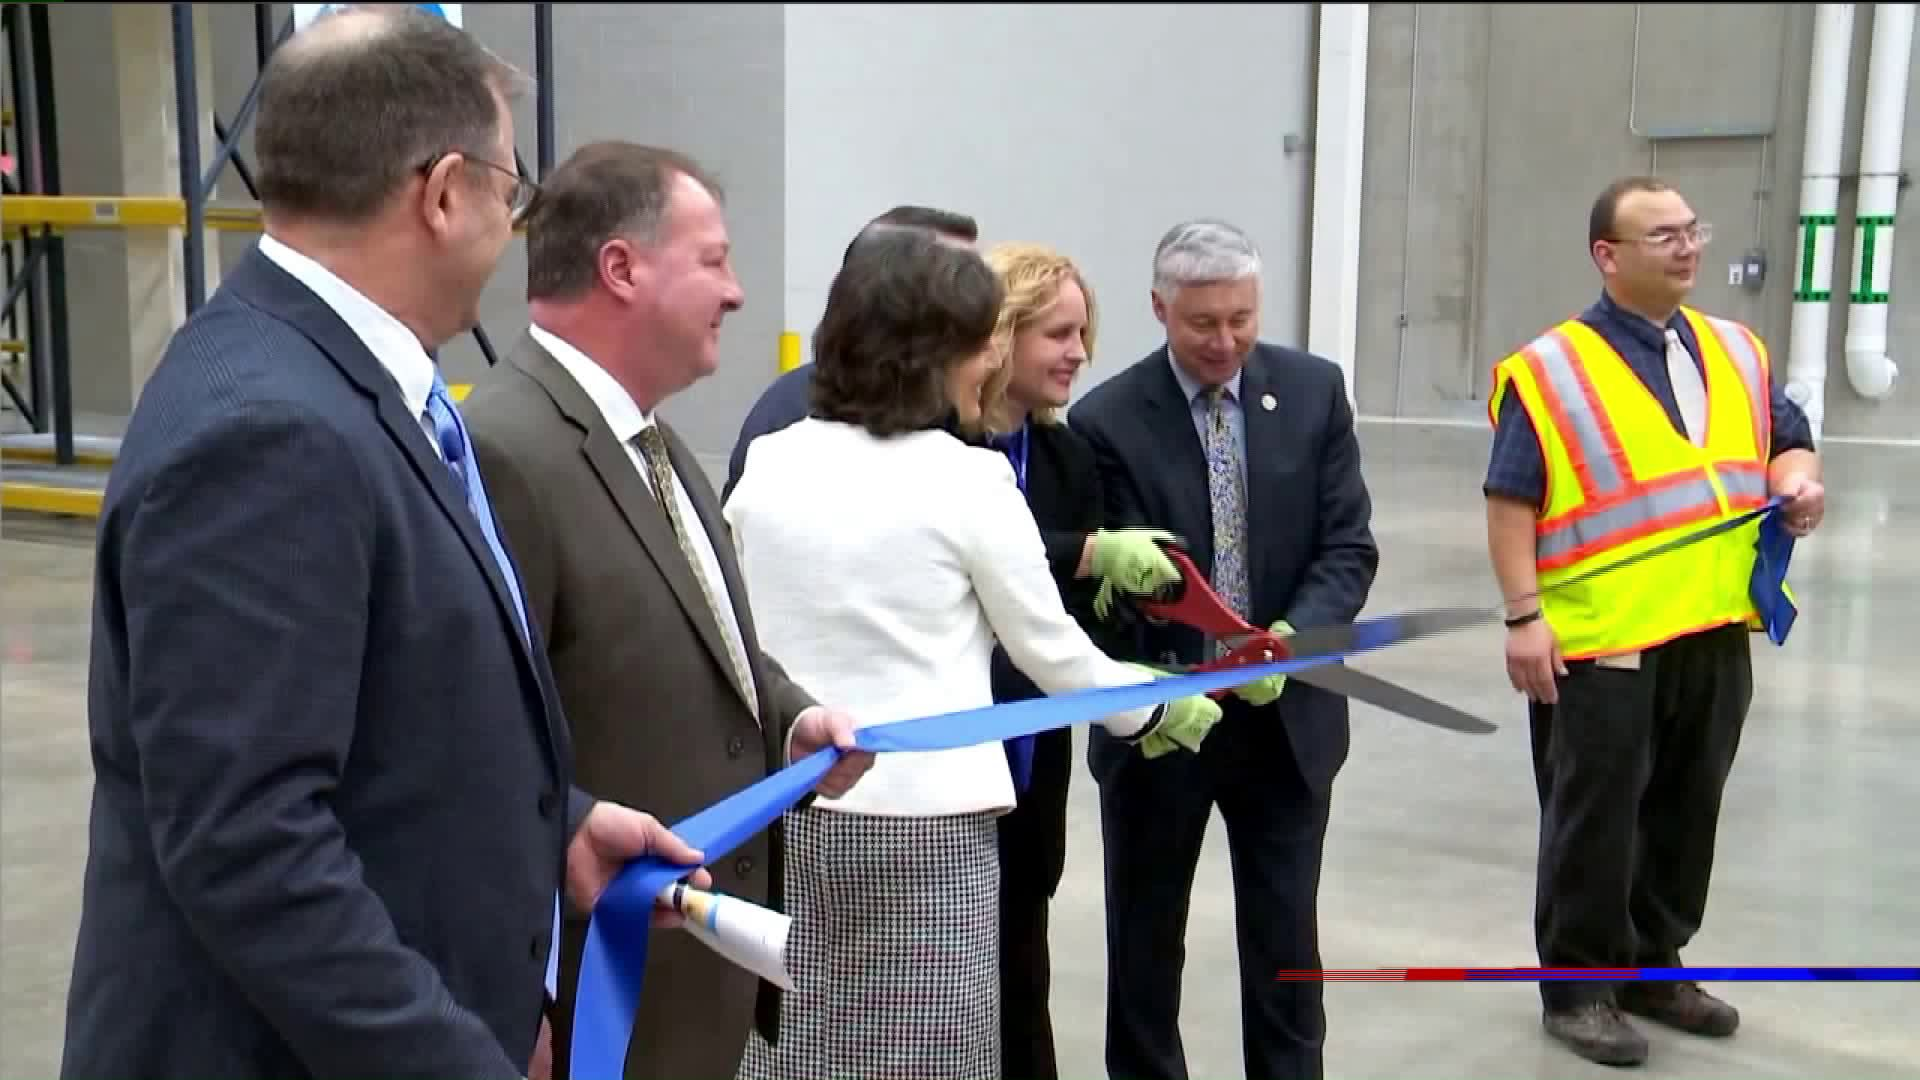 Pfizer Unveils New Warehouse Ready To Hire 200 New Employees